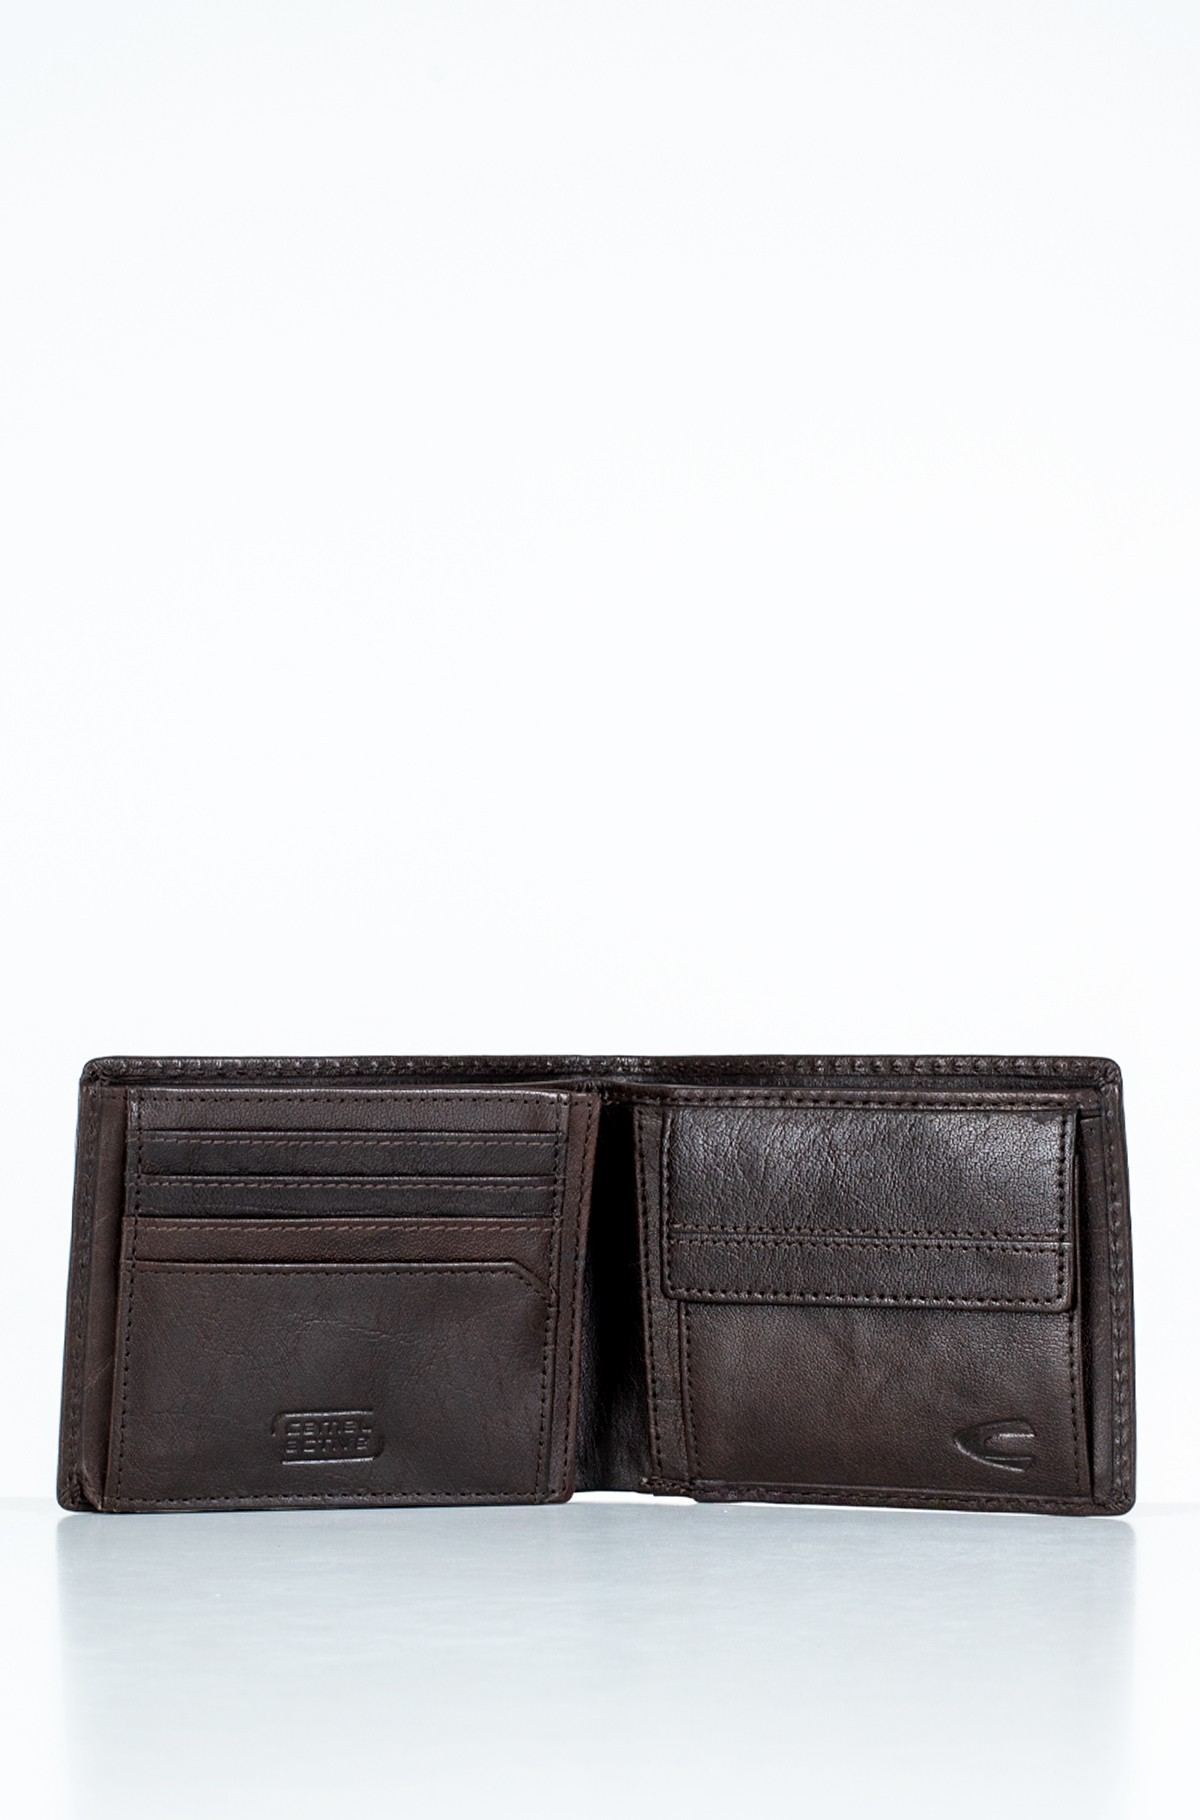 Wallet and a key chain in a gift box 288/701-full-4